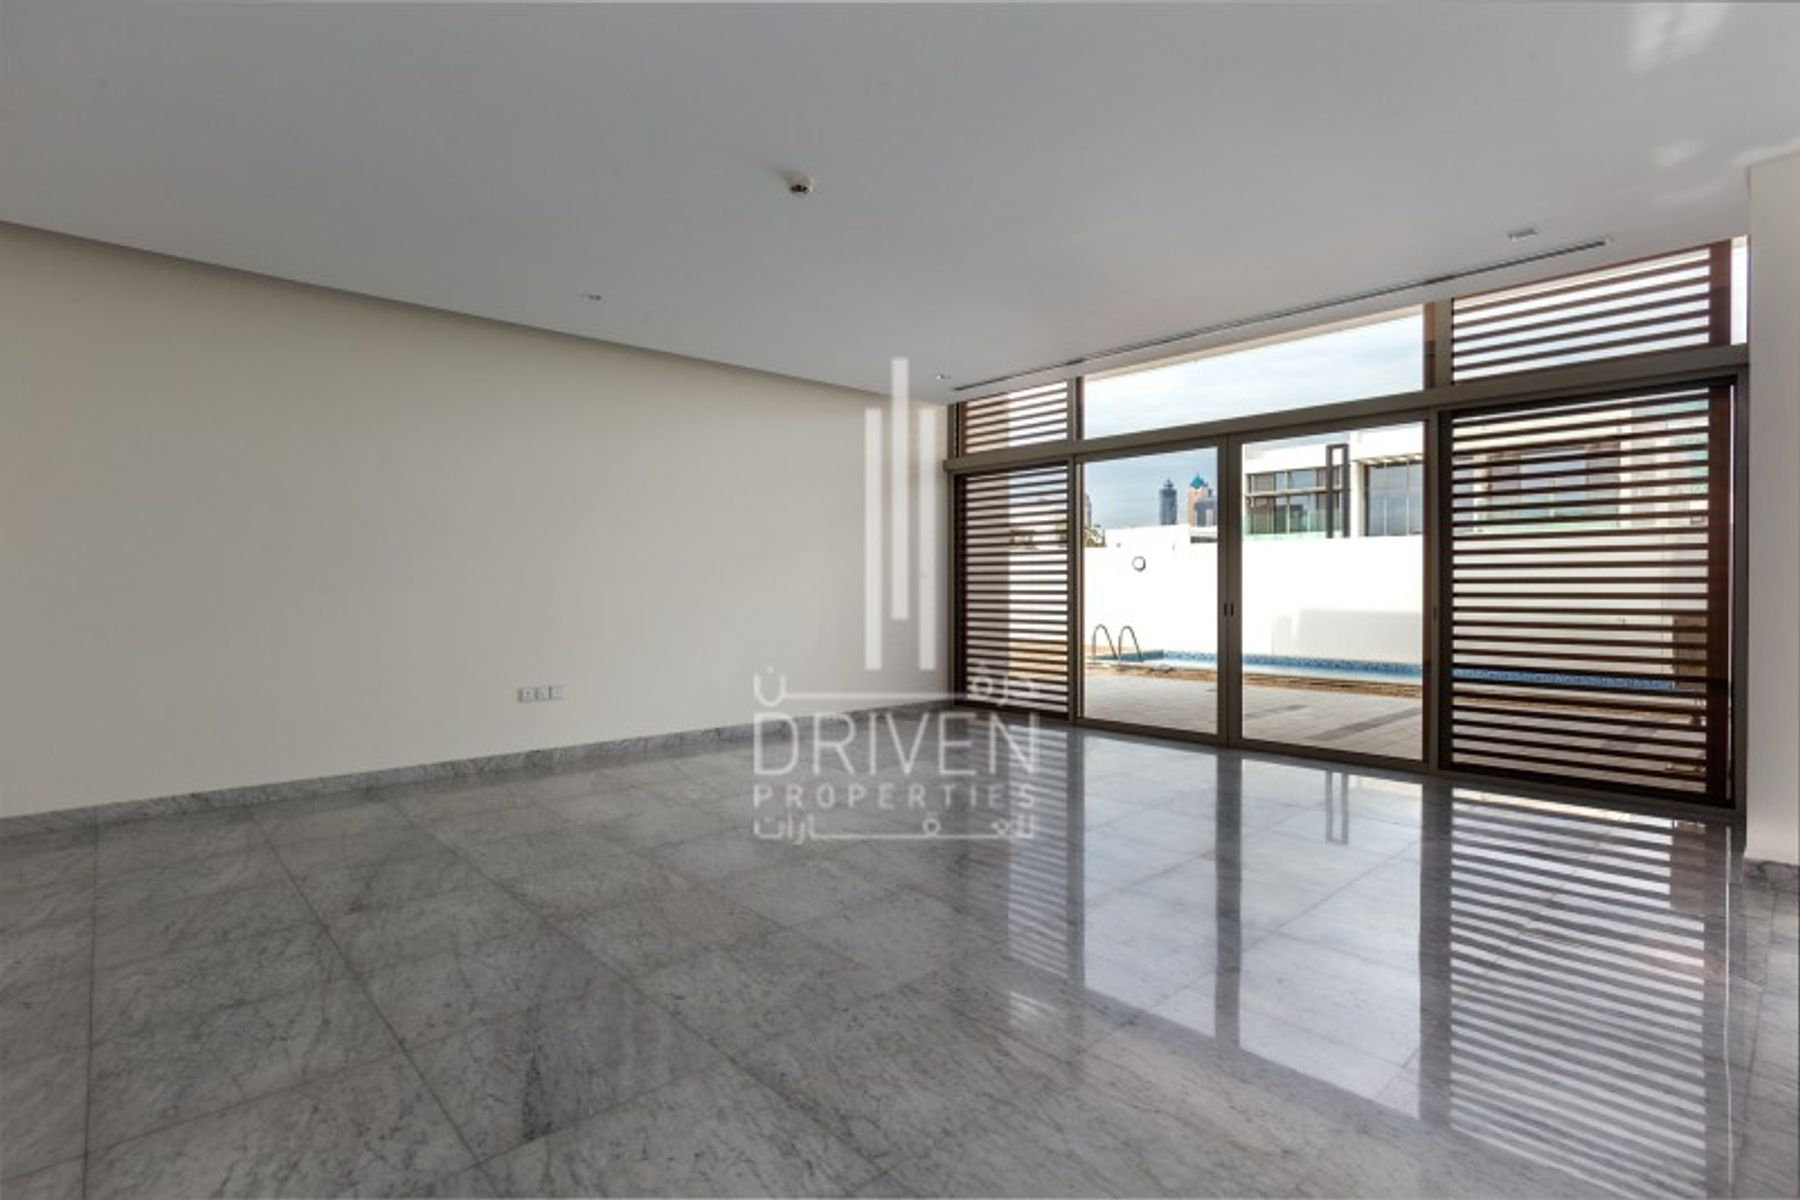 Villa for Sale in District One Villas, Mohammed Bin Rashid City